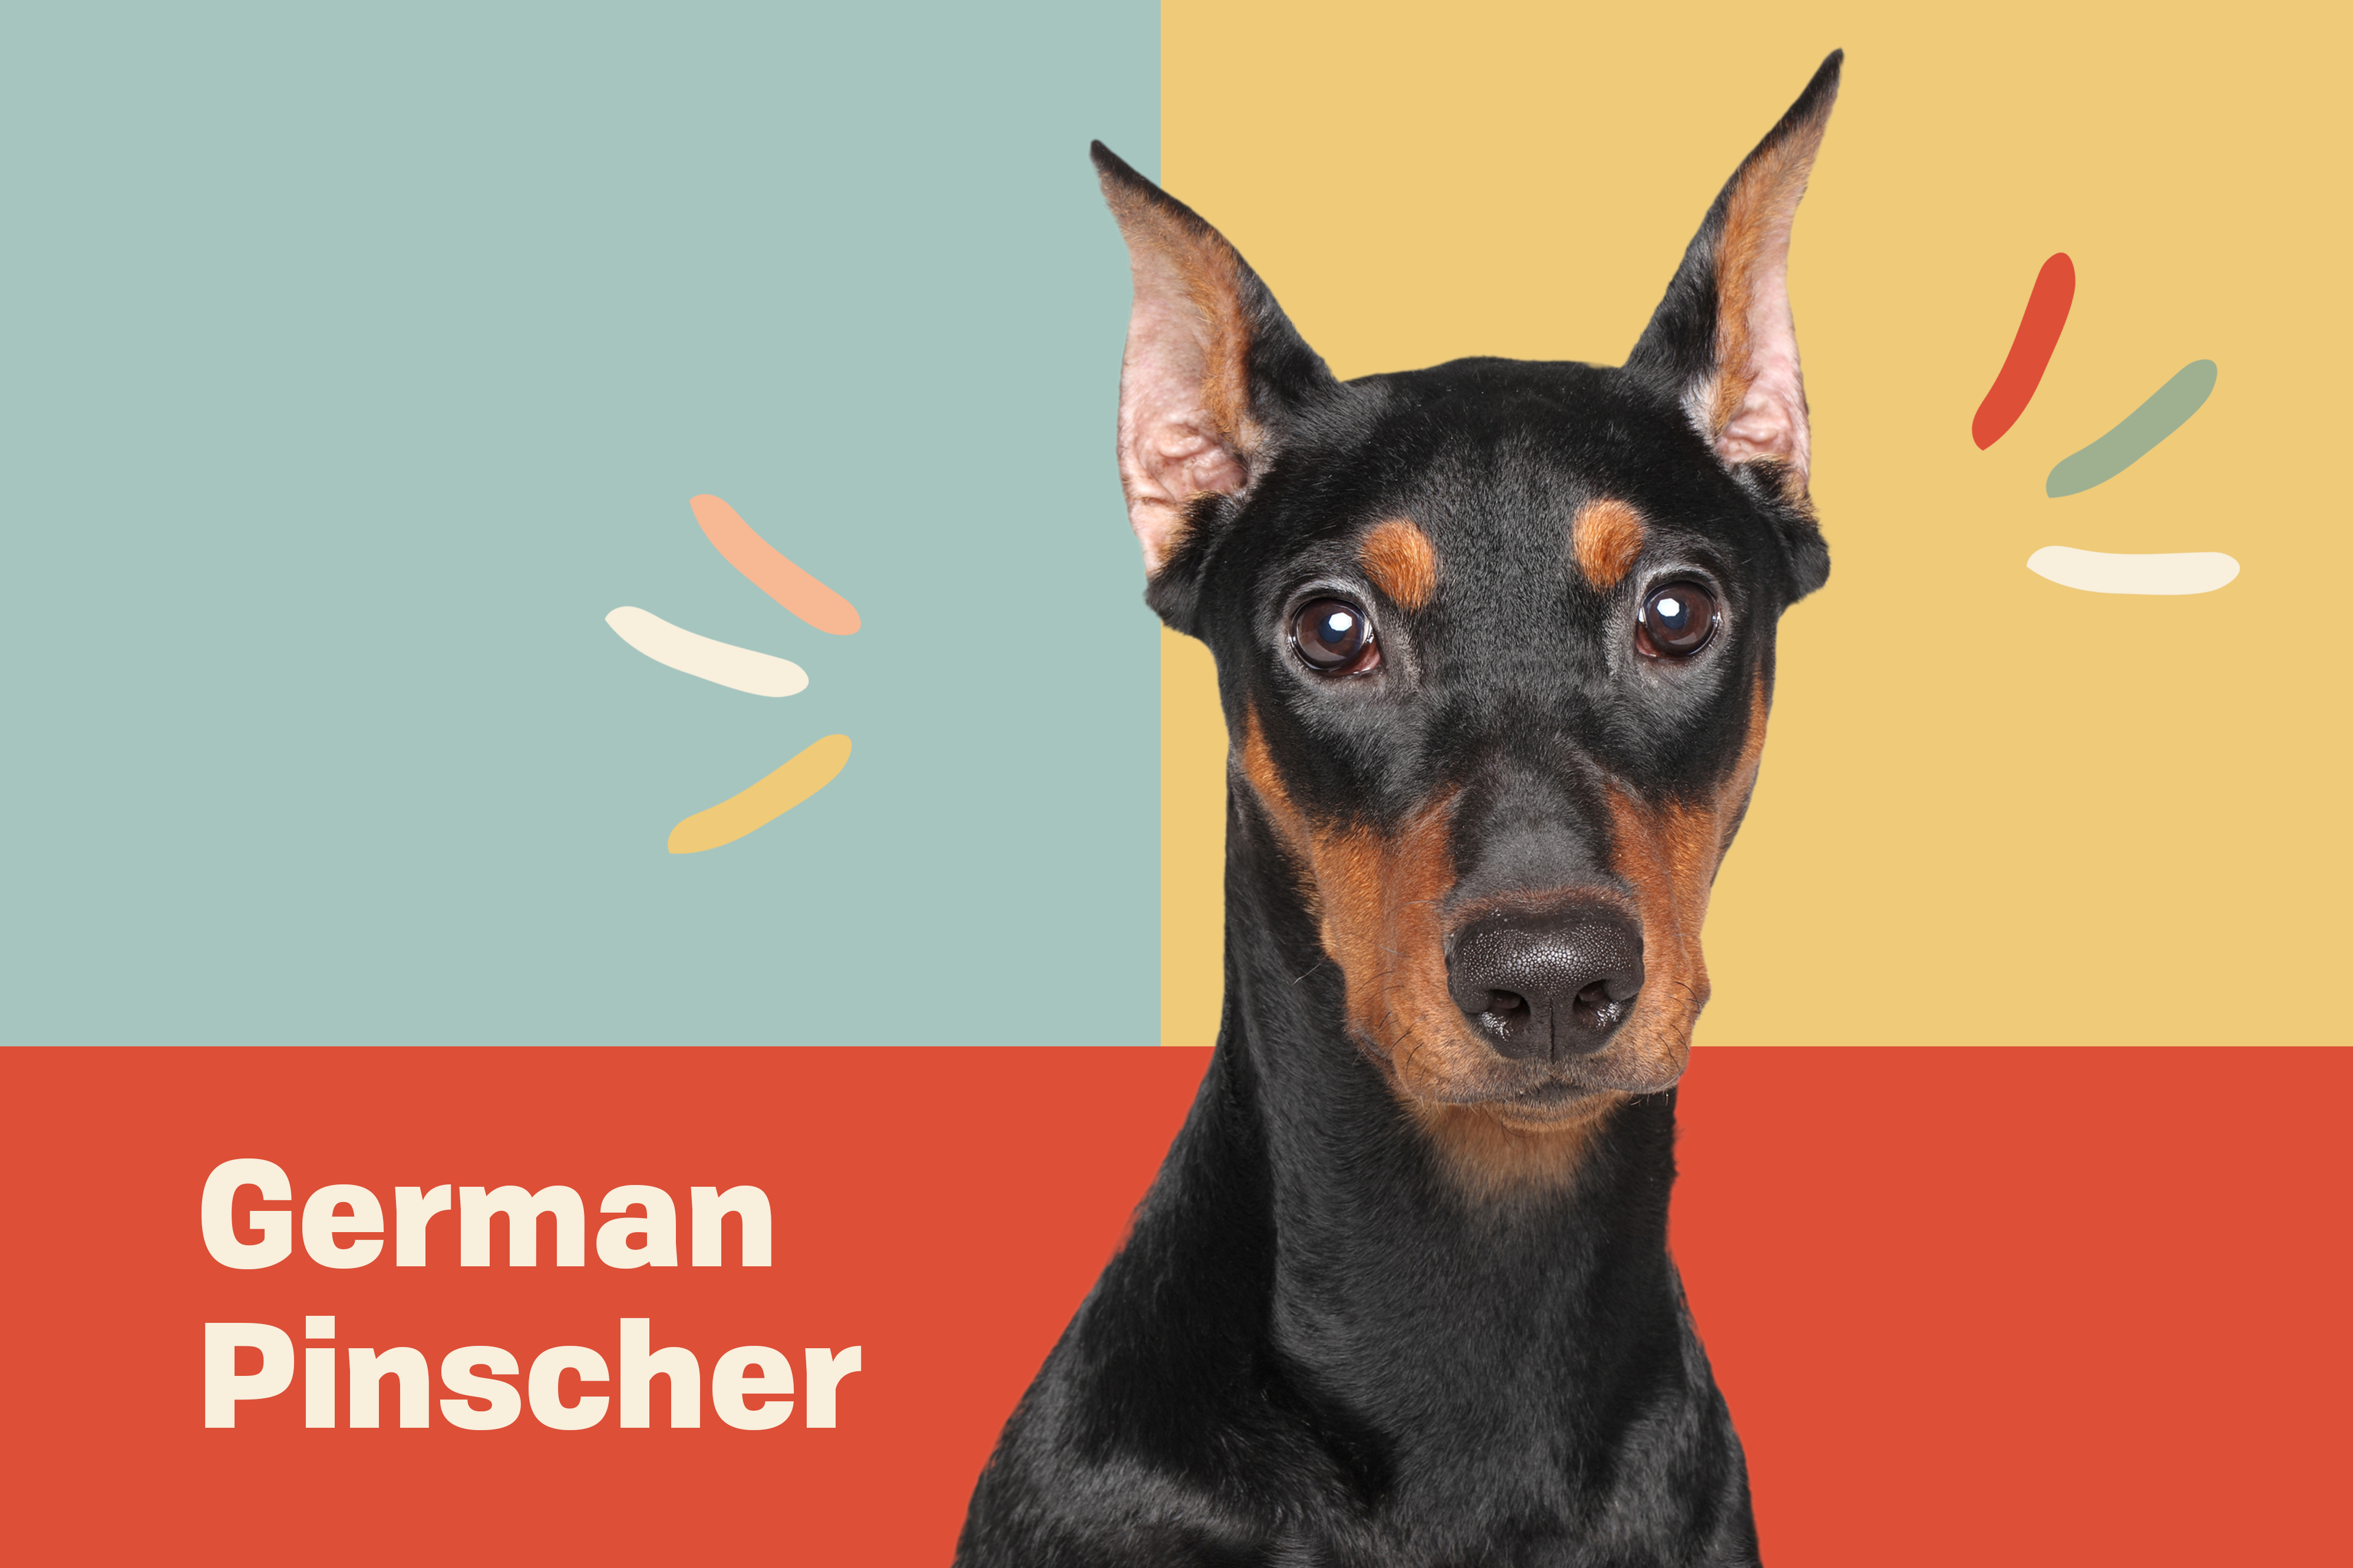 german pinscher dog breed profile treatment dog cut out on a blue, yellow and red background